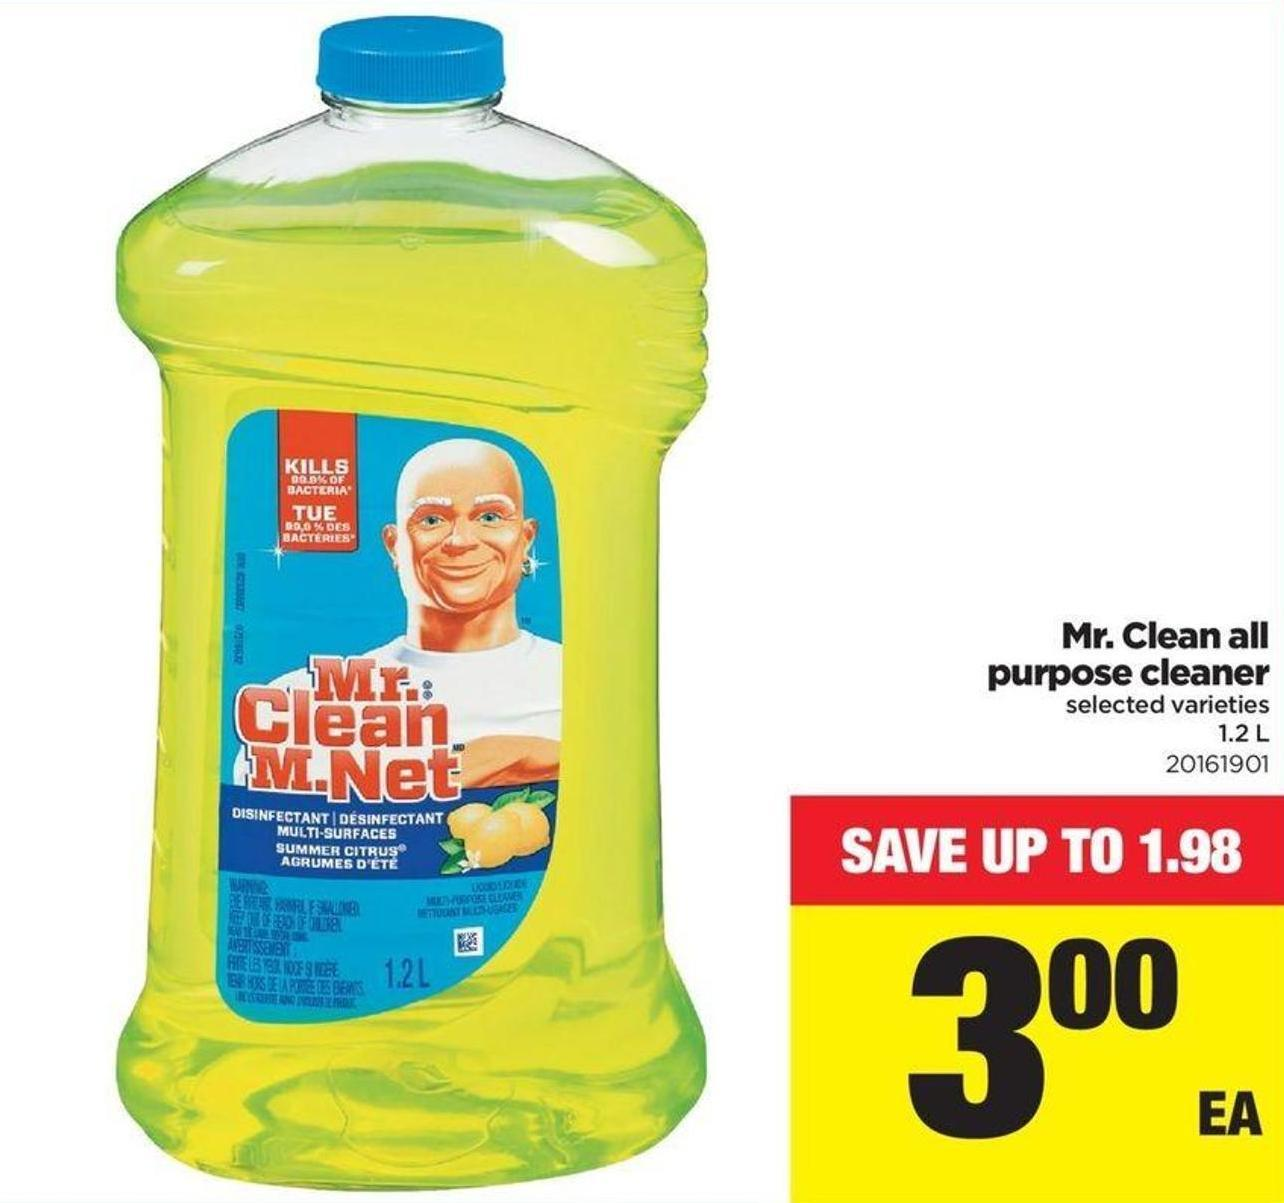 Mr. Clean All Purpose Cleaner - 1.2 L